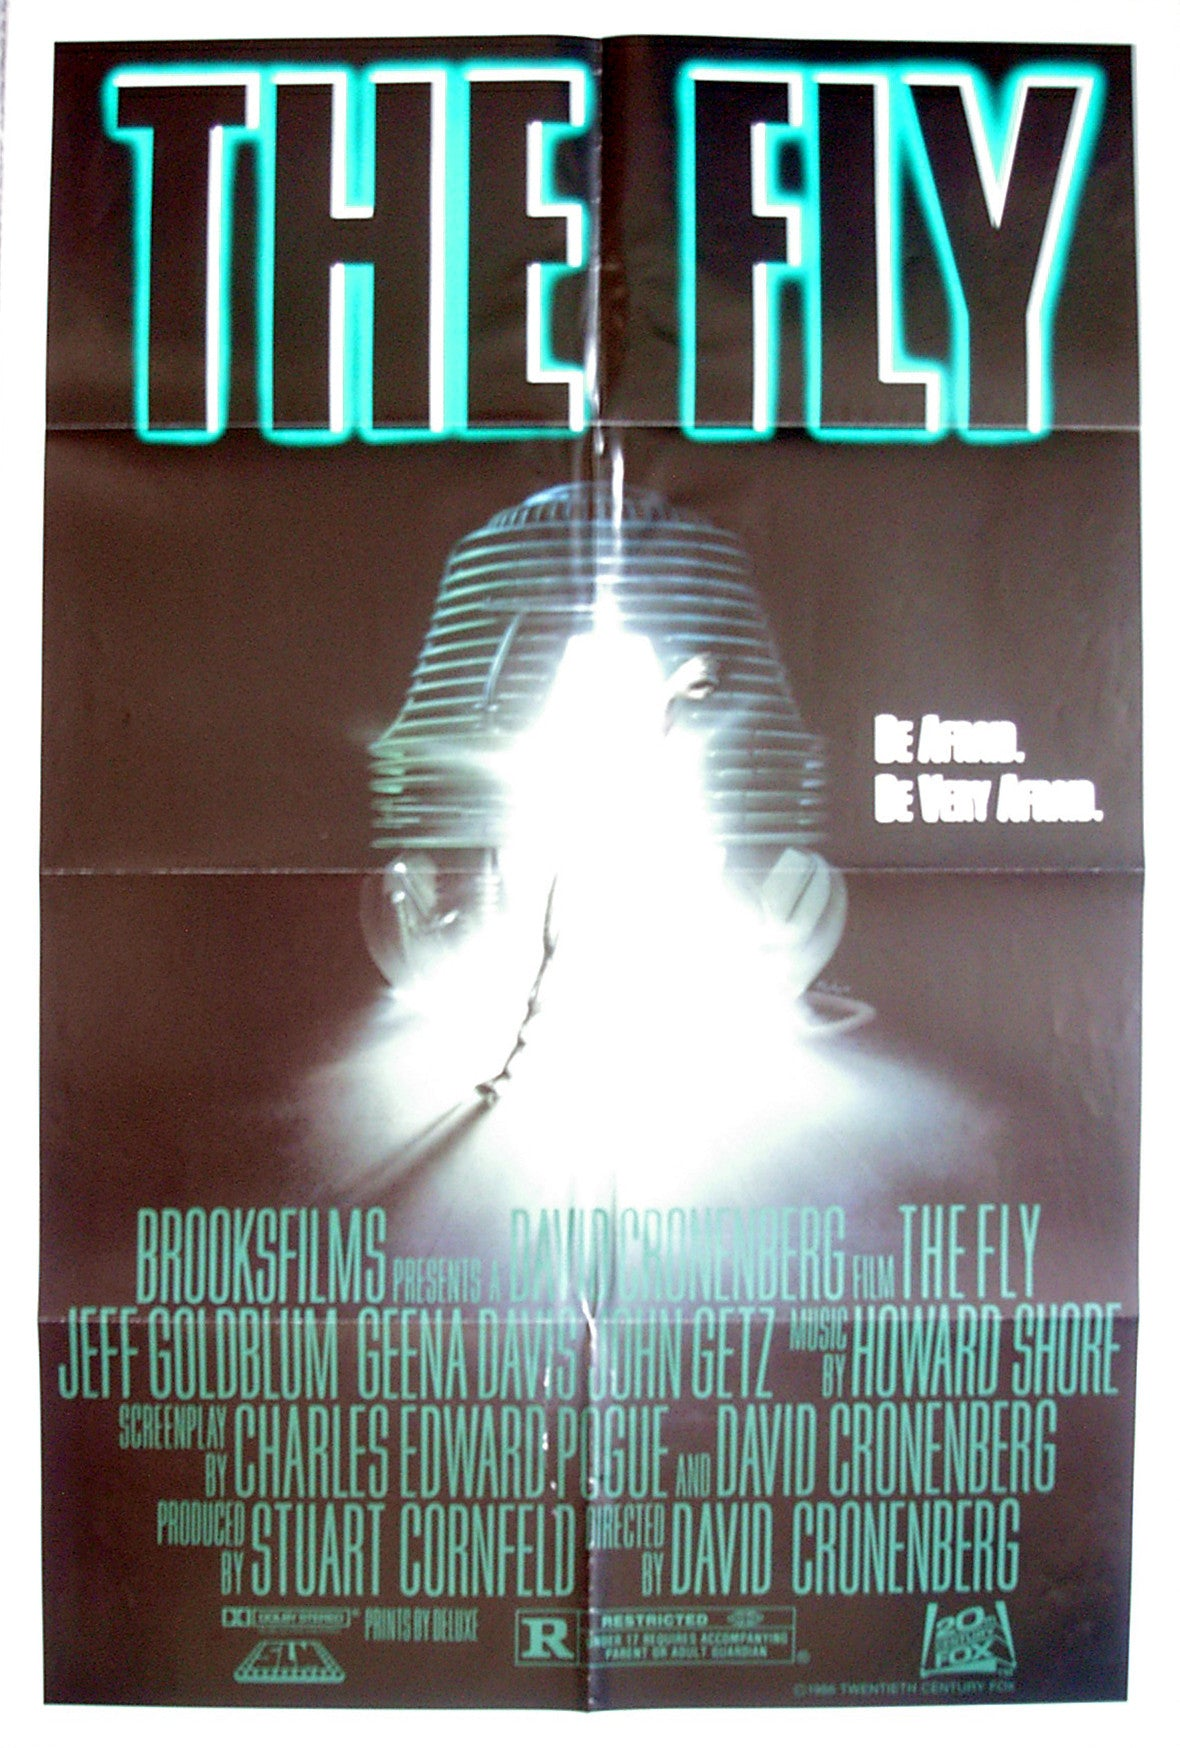 FLY, THE - US one-sheet poster